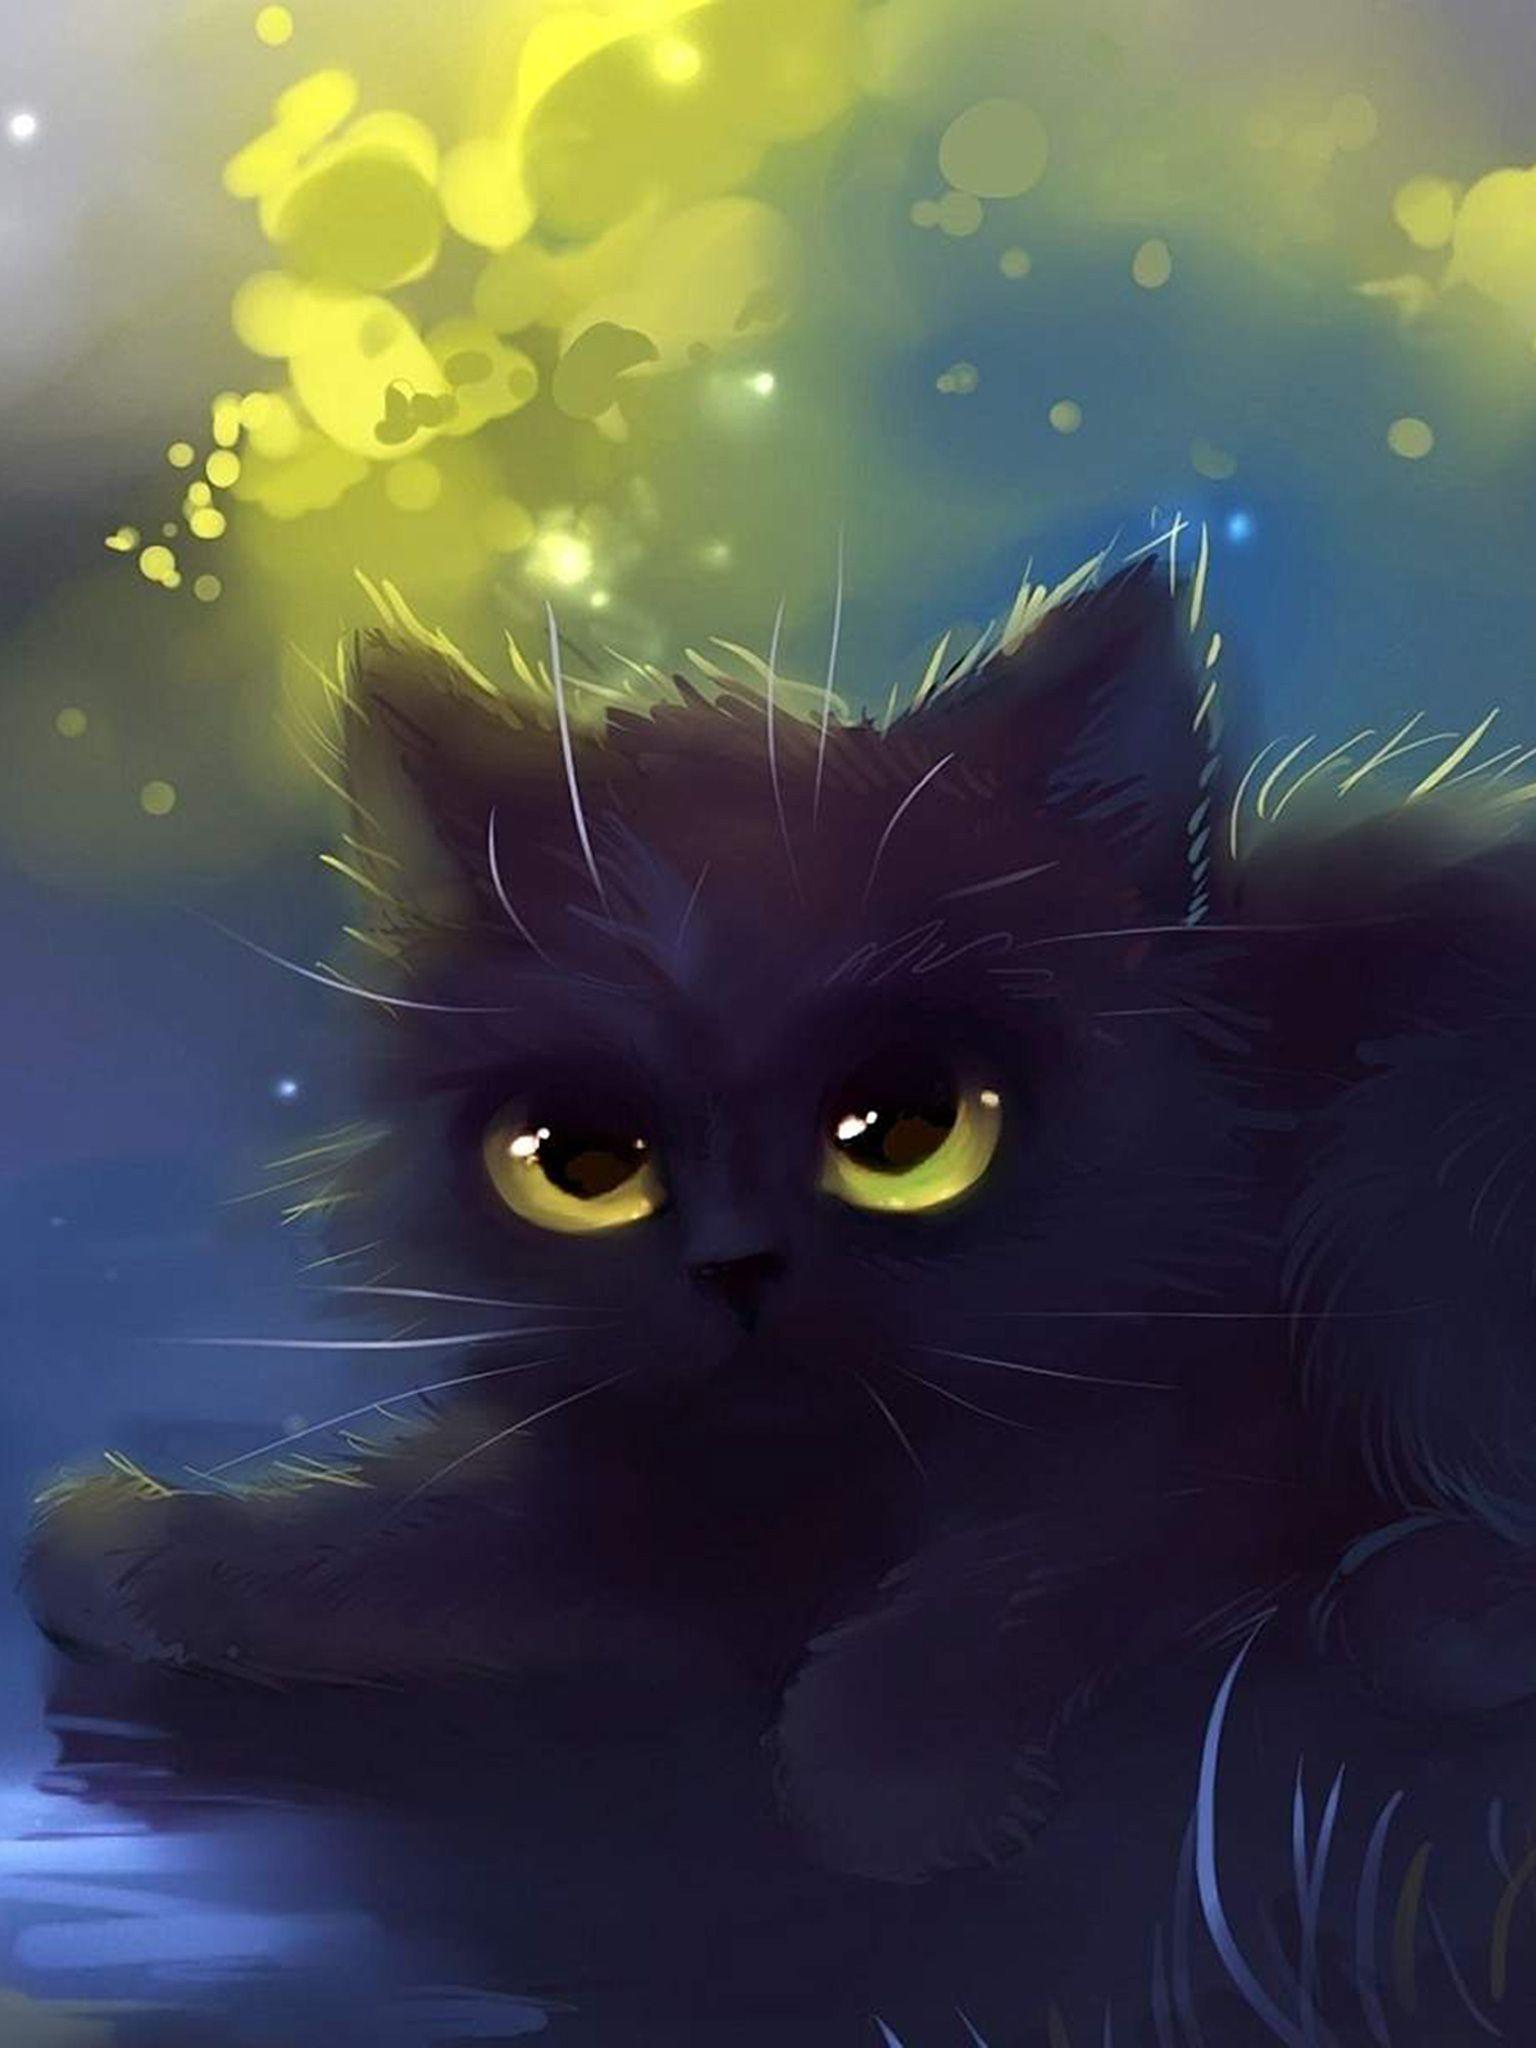 Aesthetic Black Cat Wallpapers Top Free Aesthetic Black Cat Backgrounds Wallpaperaccess